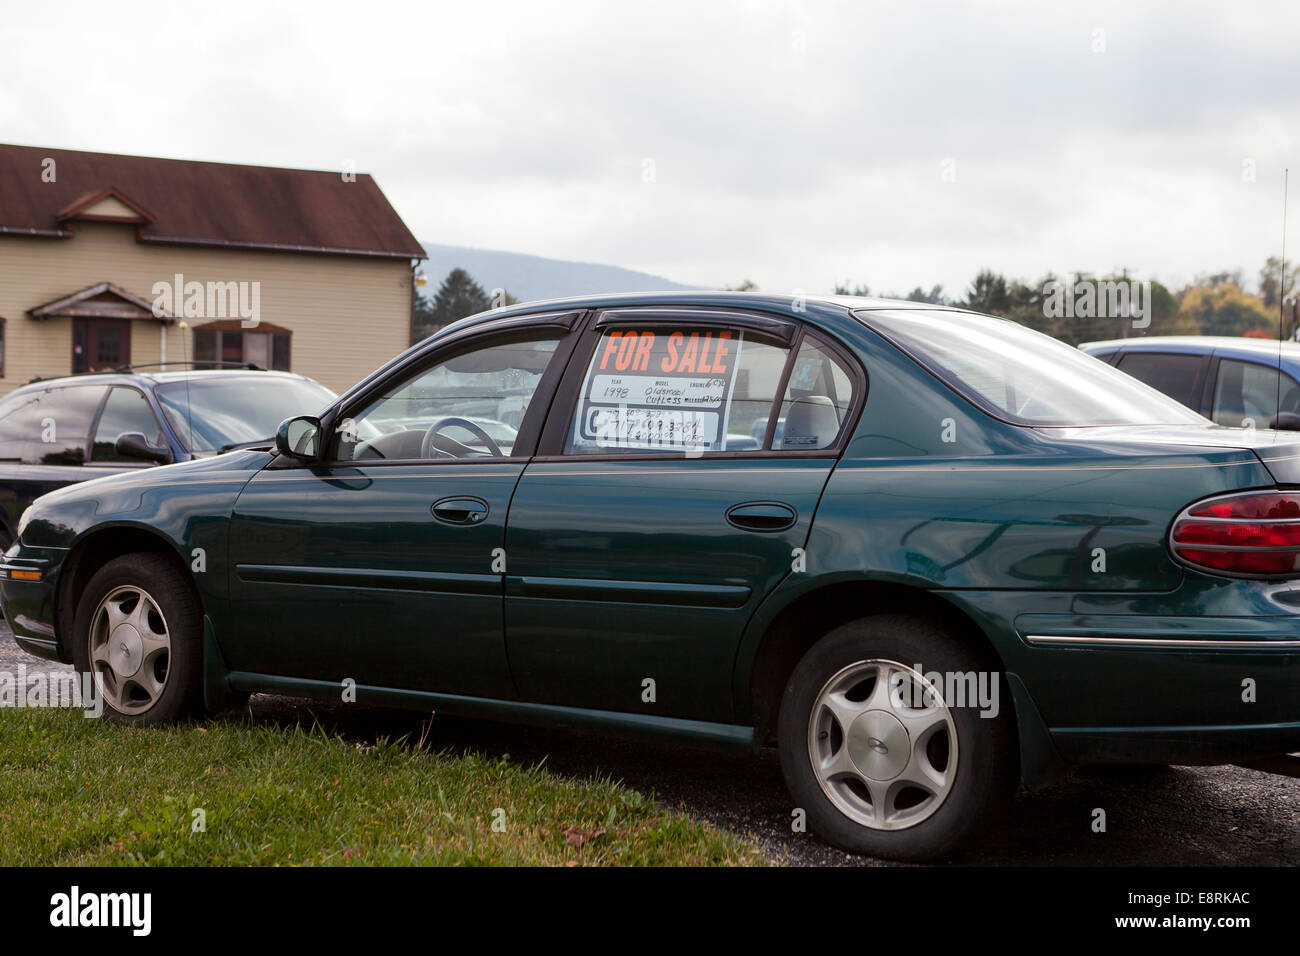 For sale sign in car window Pennsylvania USA Photo – Free for Sale Signs for Cars